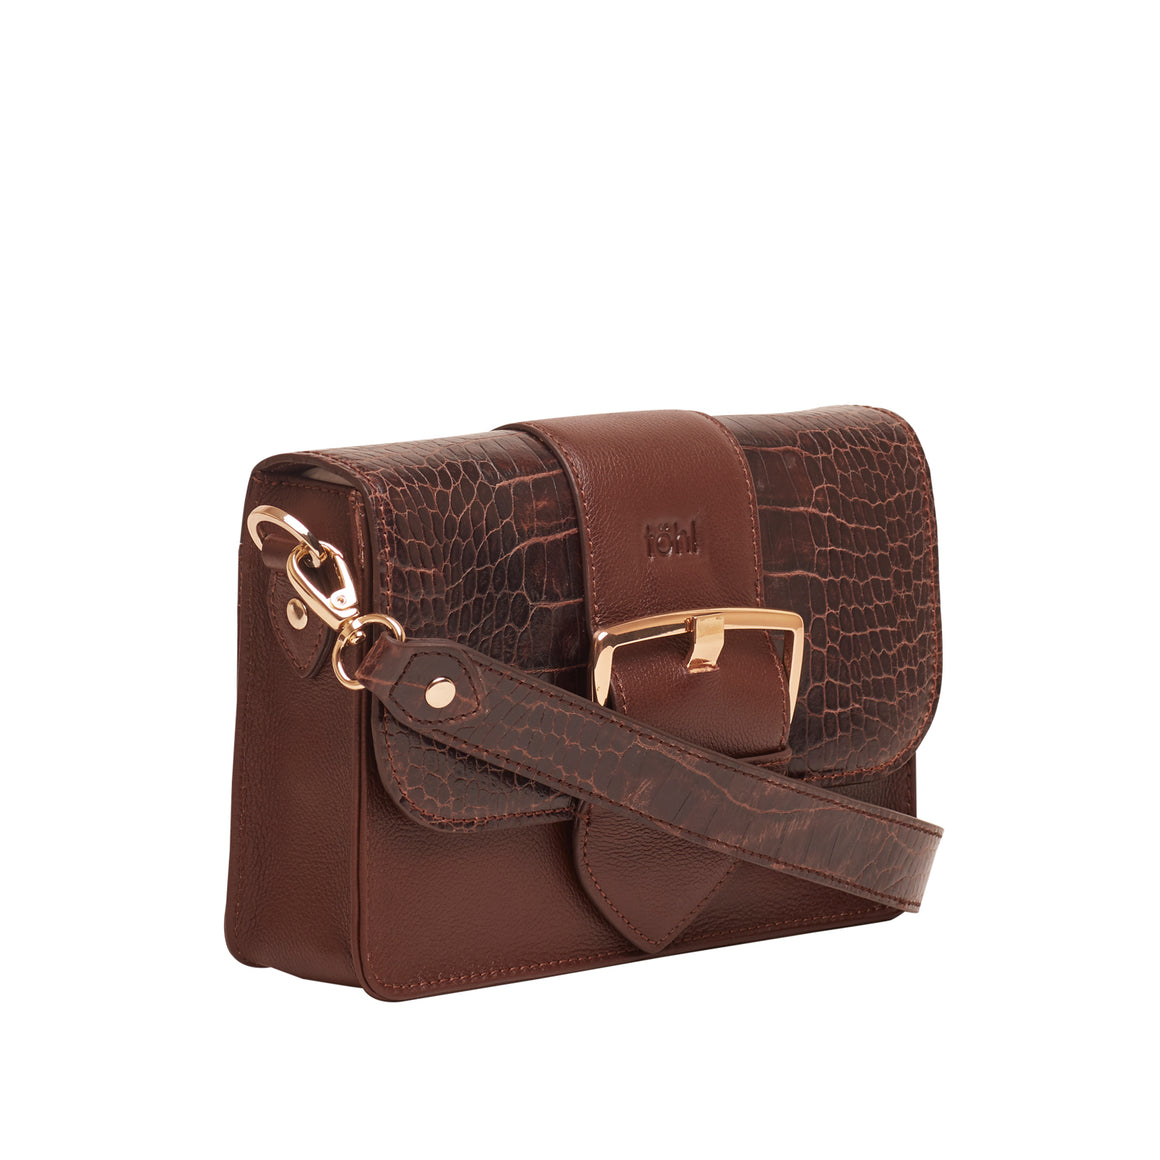 SG 0017 - TOHL TWIGGY WOMEN'S SLING BAG - CHOCO